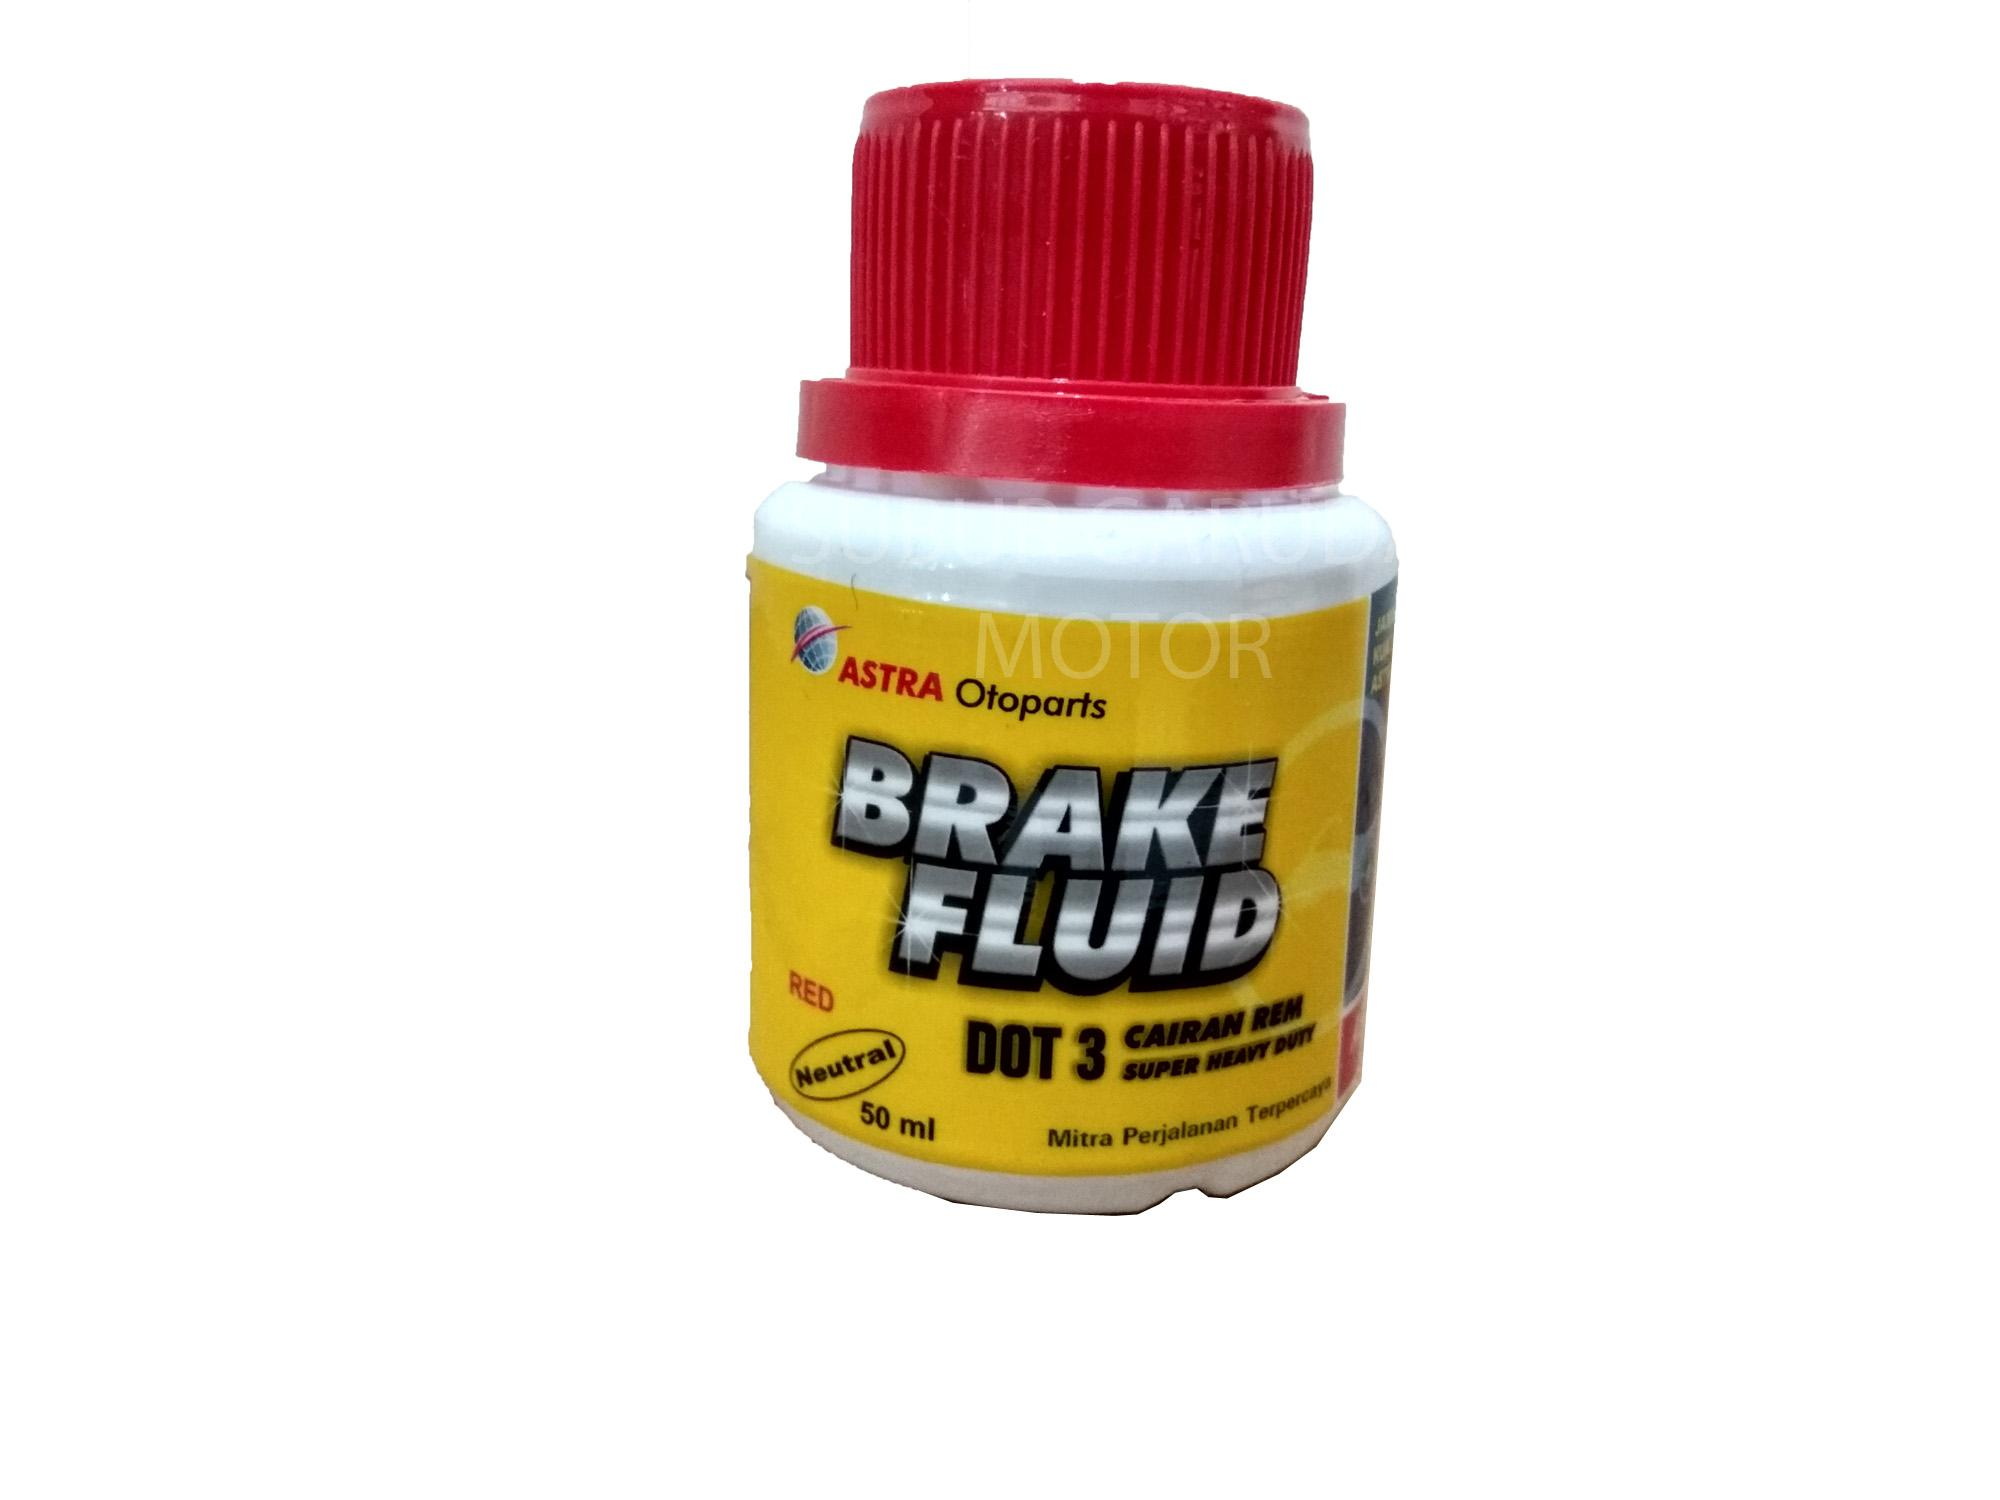 OLI REM ASPIRA 50 ML DOT 3 MINYAK CAIRAN BRAKE FLUID SNI